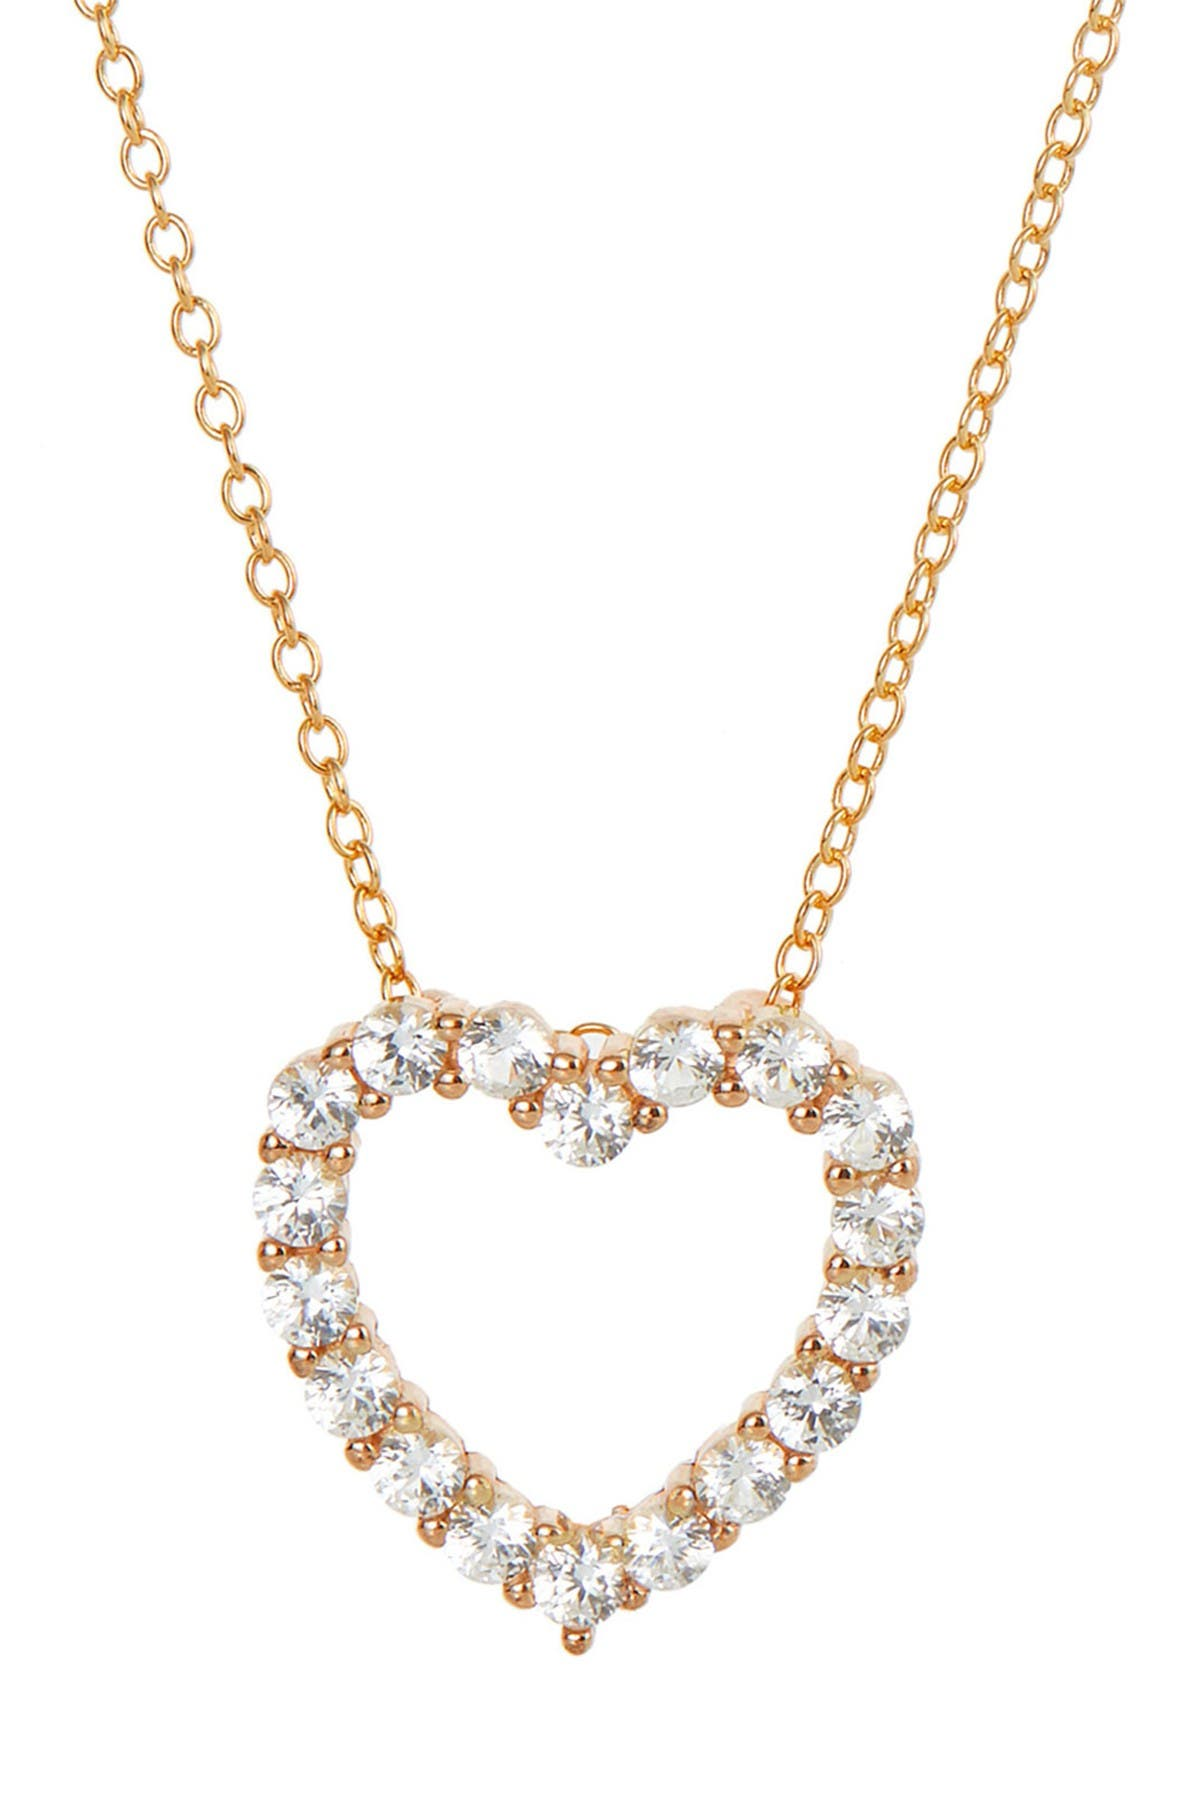 Image of Savvy Cie 18K Rose Gold Vermeil Sterling Silver Created Sapphire Heart Pendant Necklace